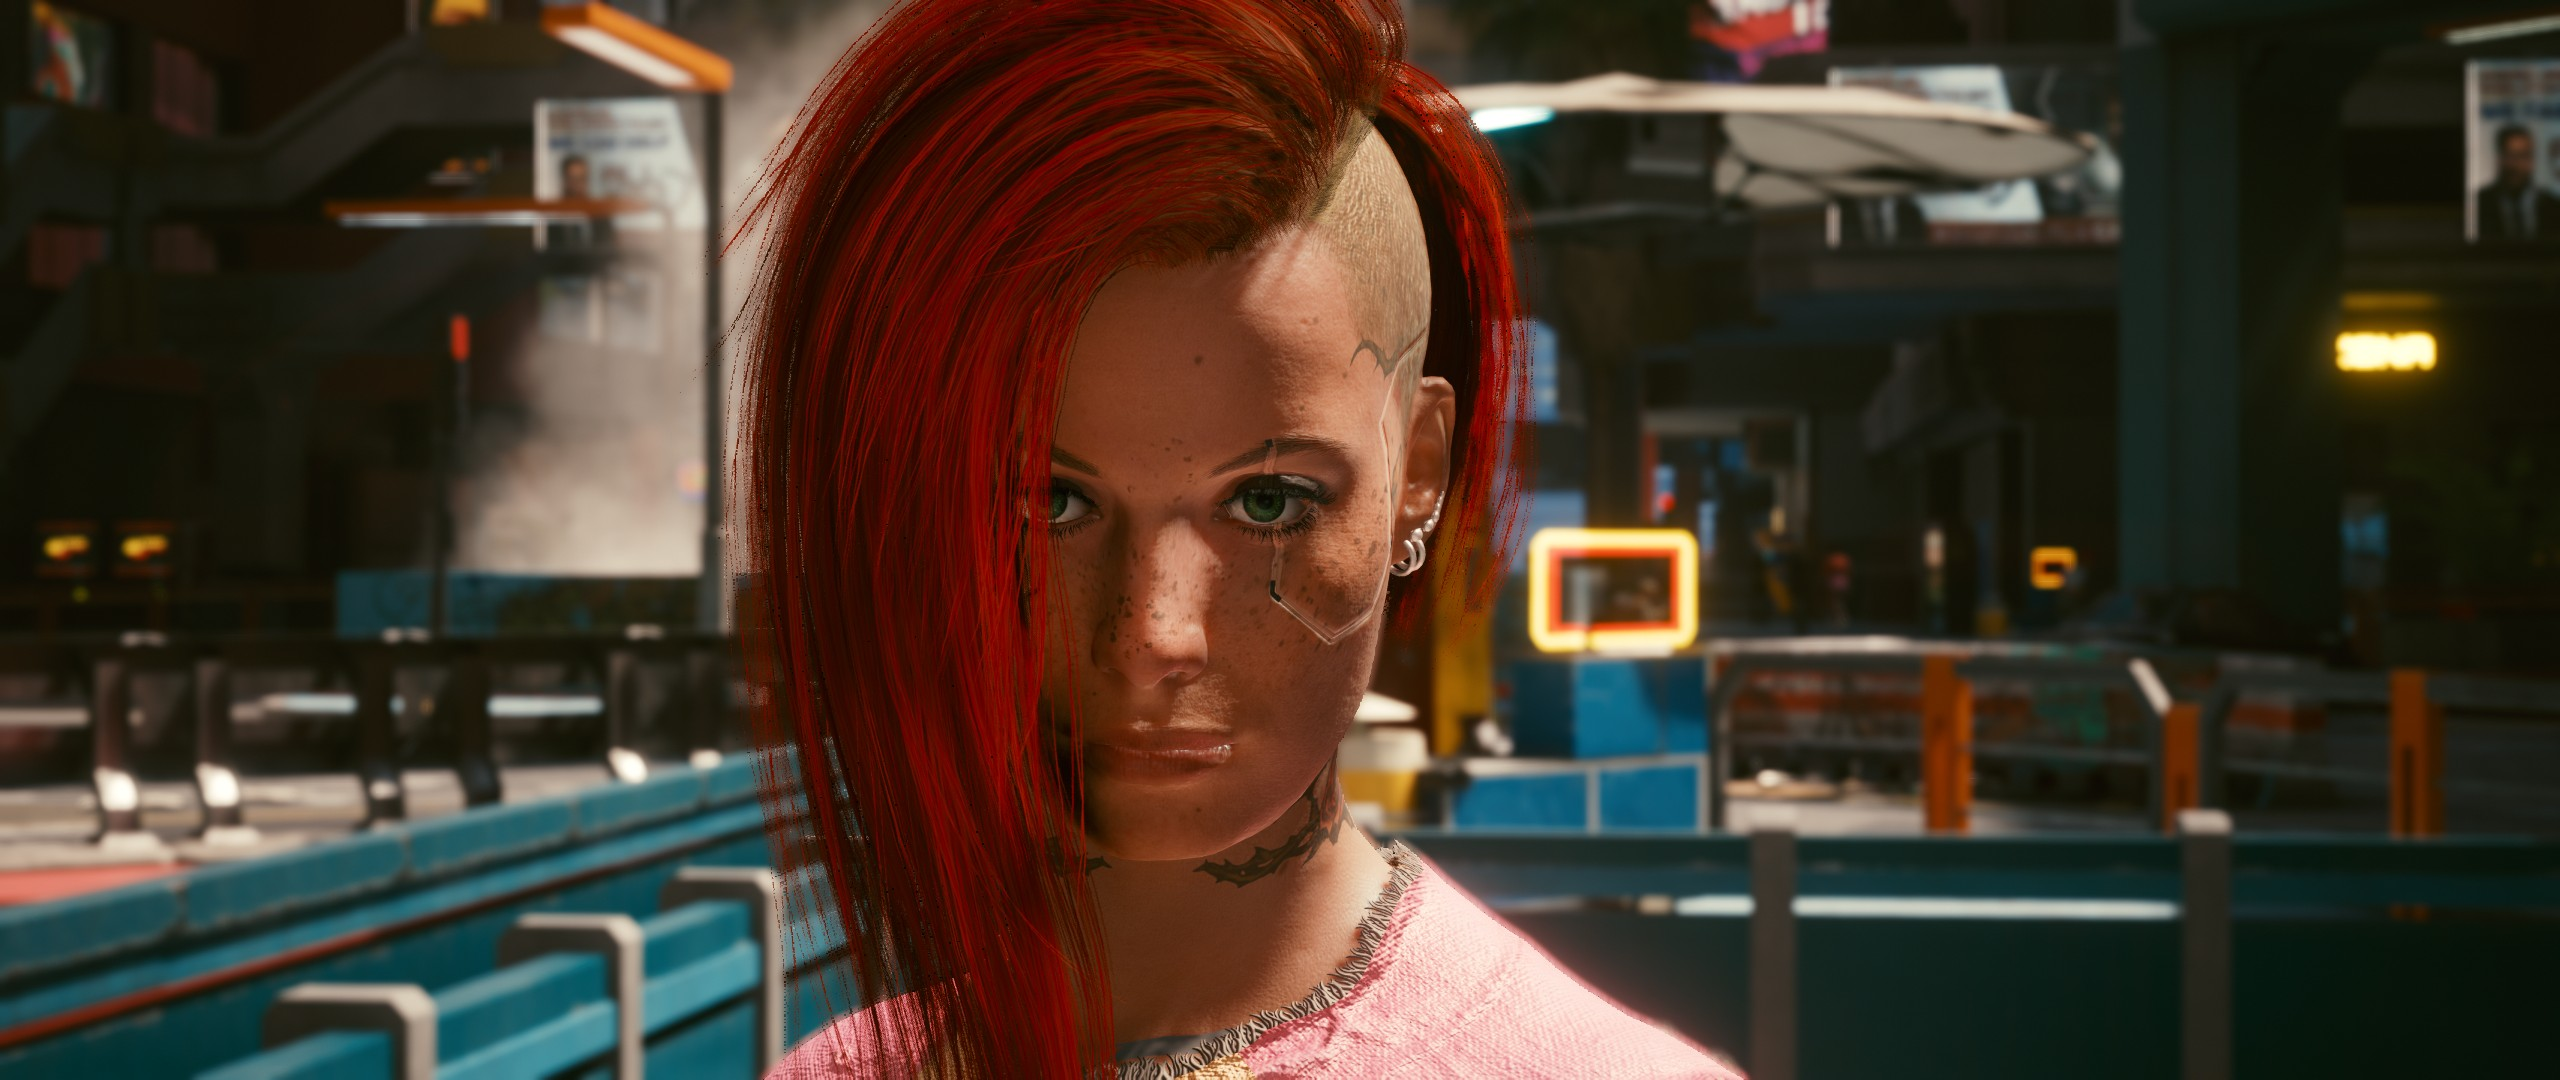 Cyberpunk 2077: Sweet V before and after the robbery